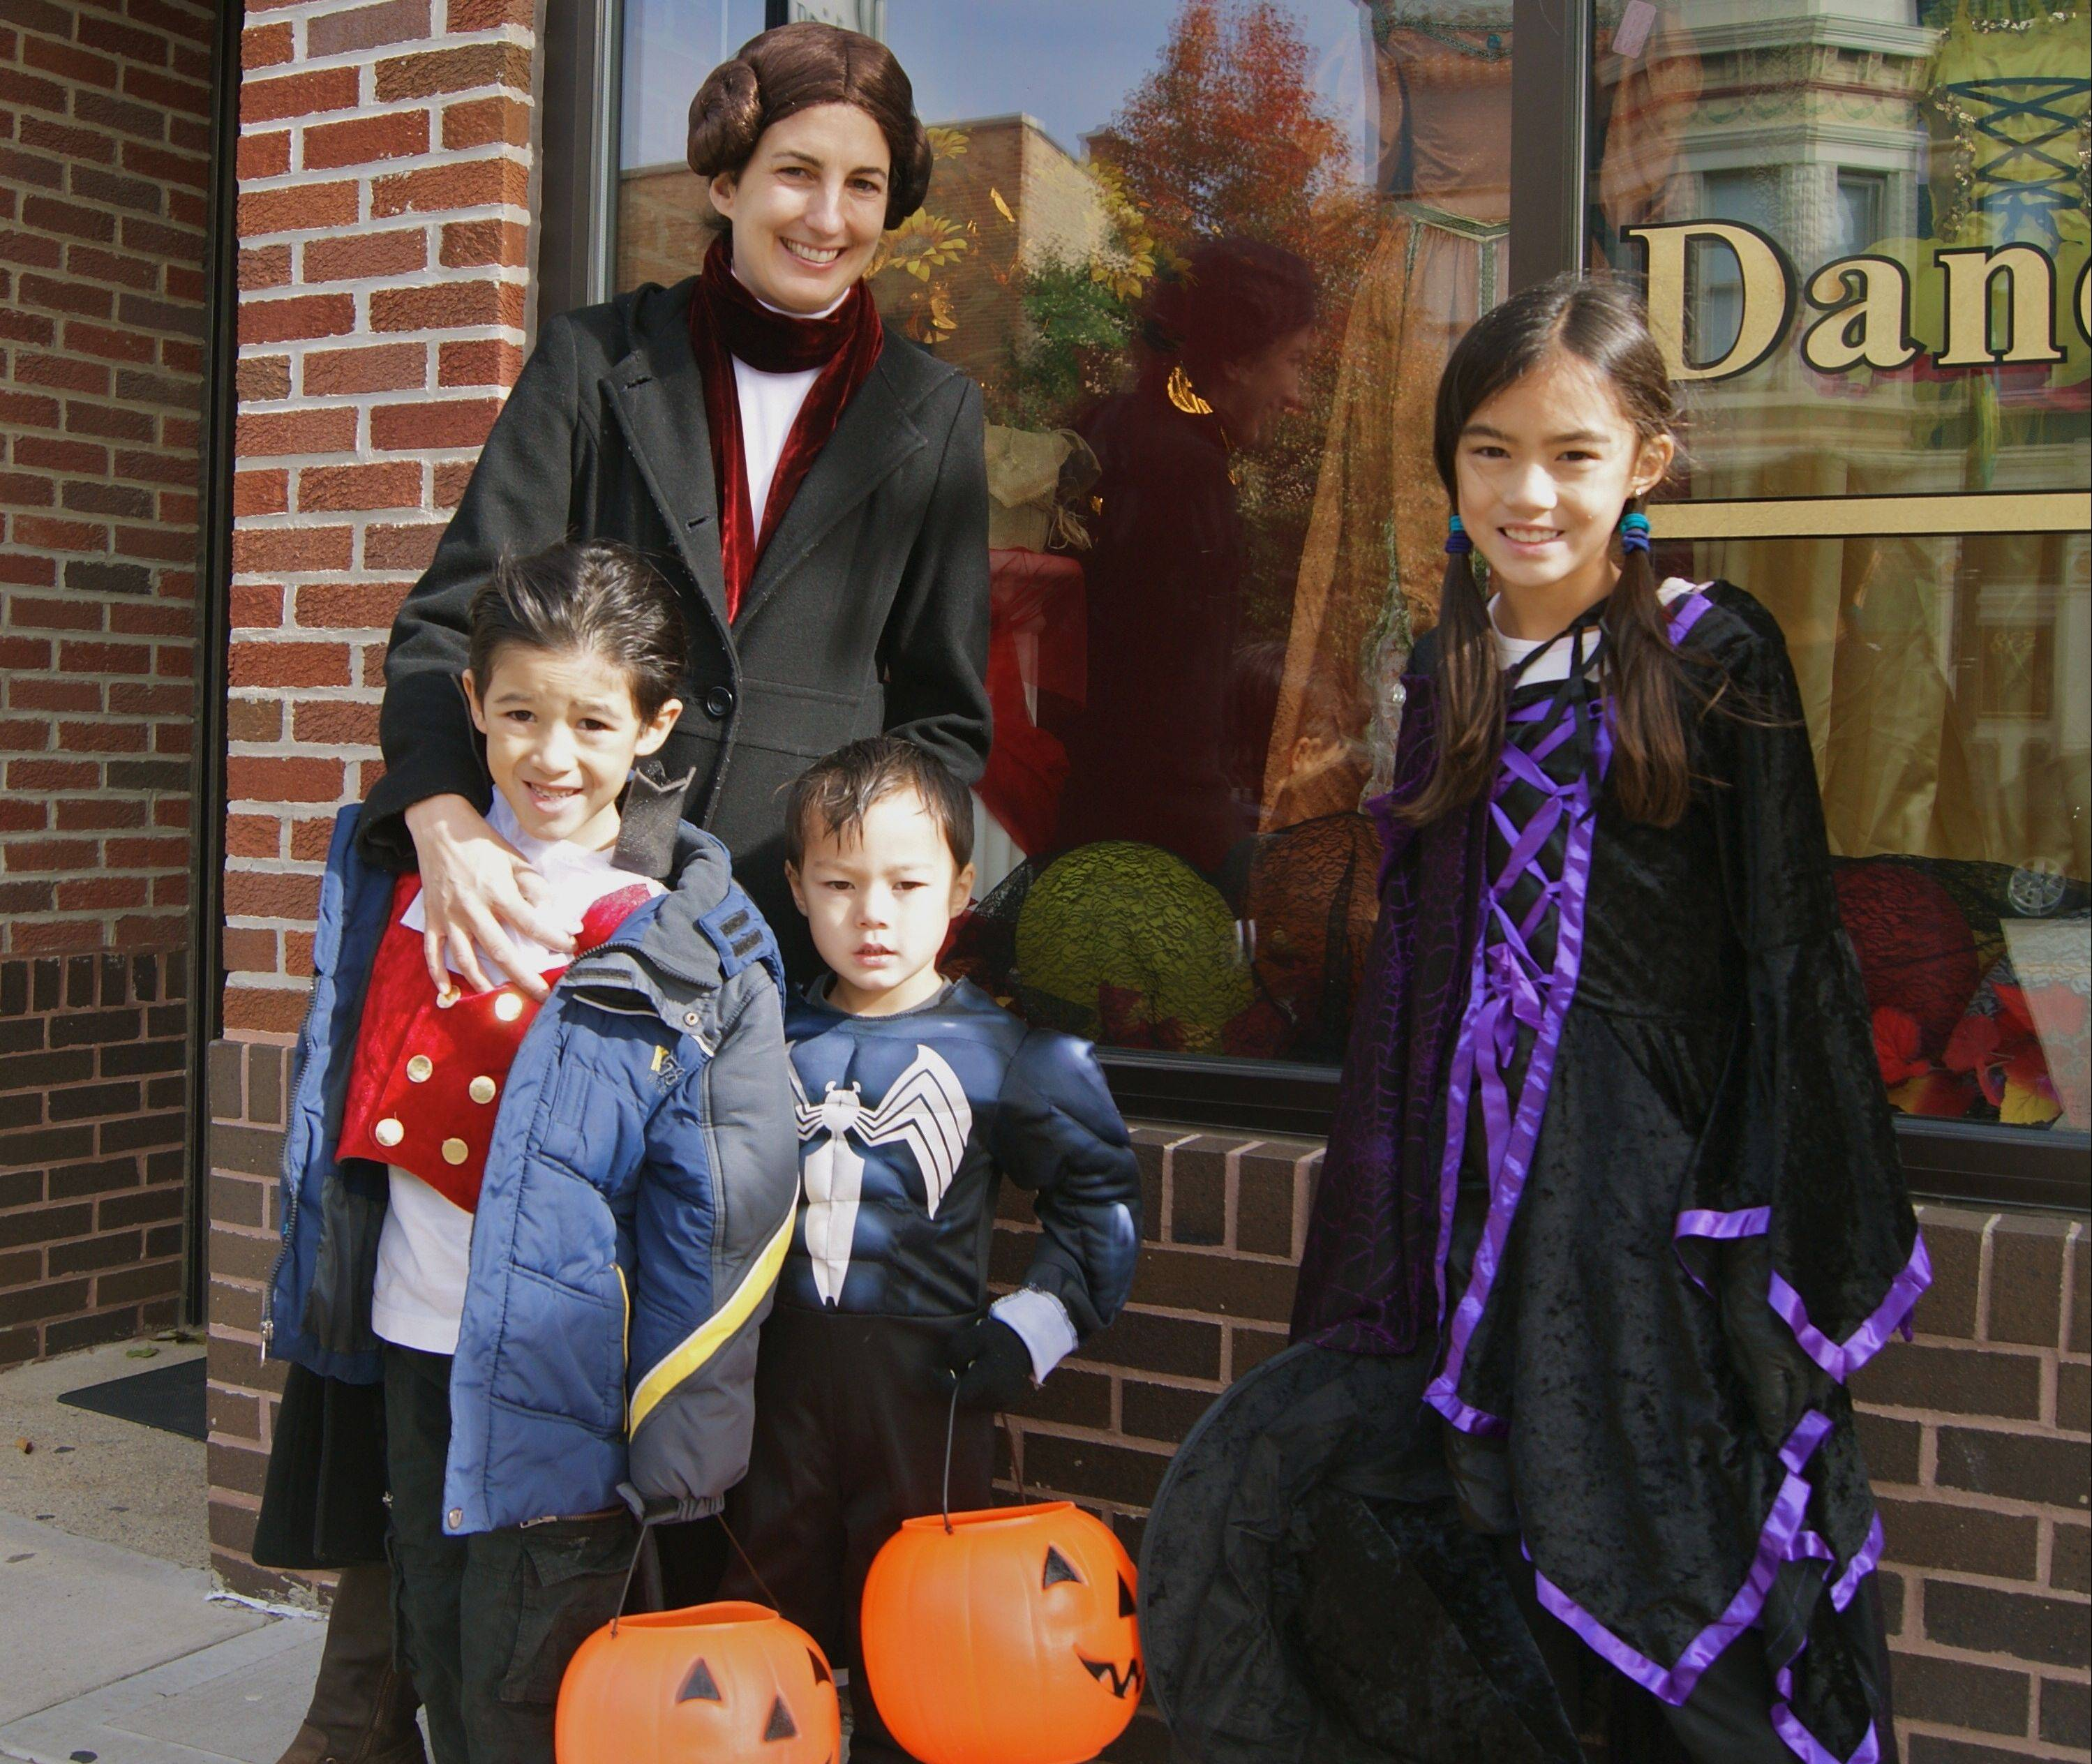 Trick-or-treaters are invited to downtown Libertyville from 11 a.m. to 3 p.m. on Halloween.